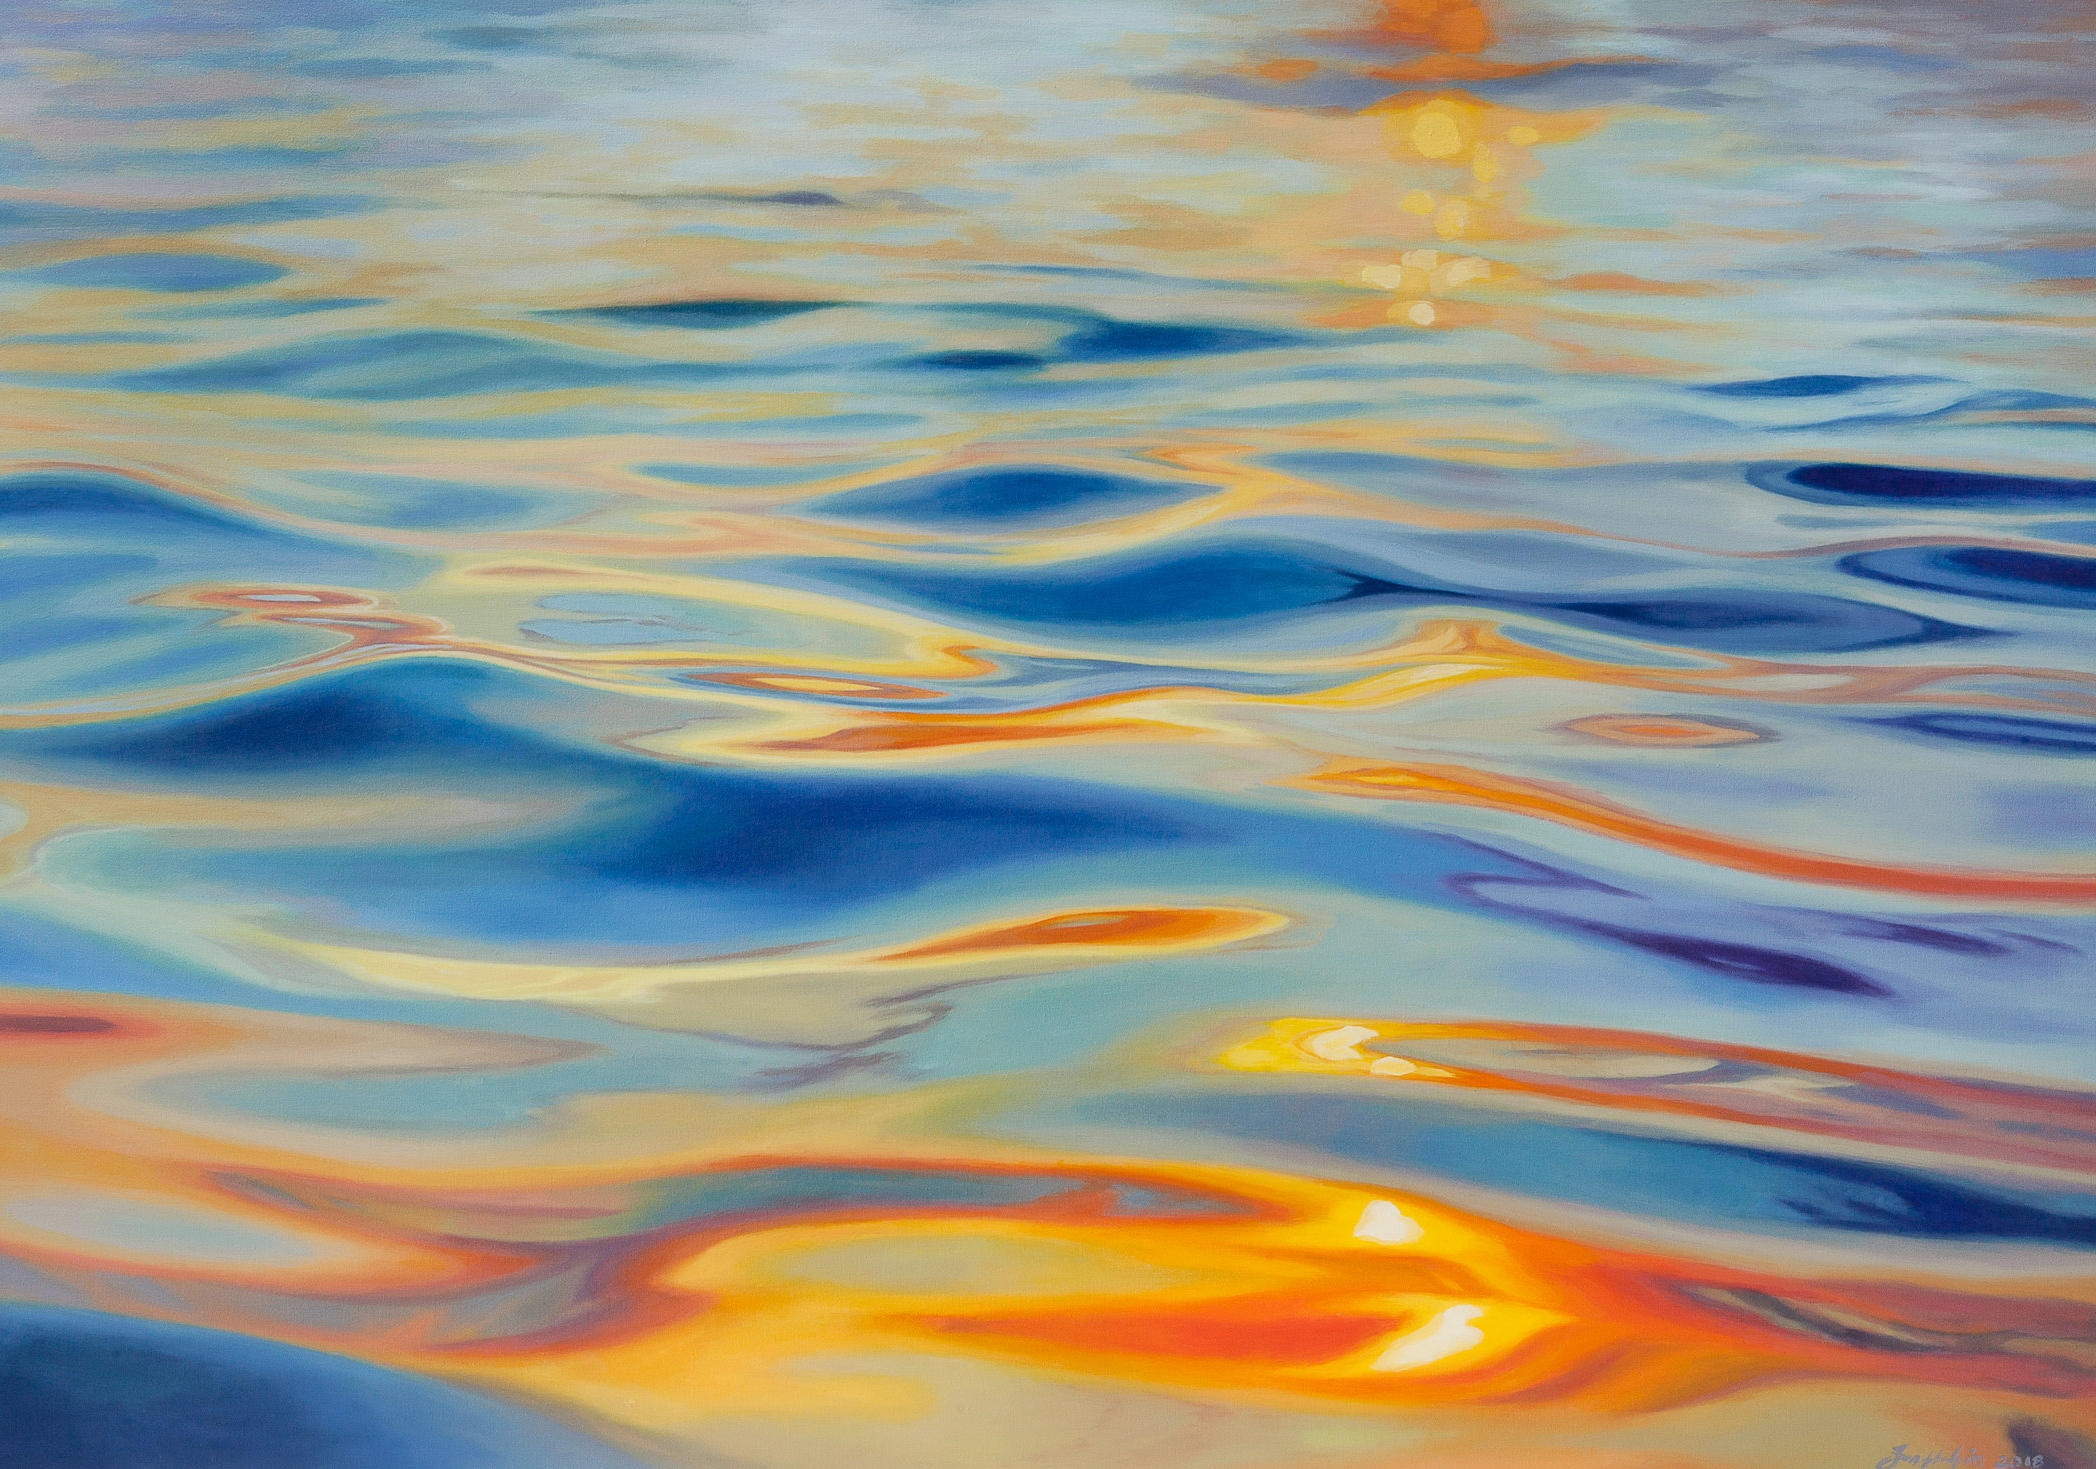 Liquid gold 70cm x 100cm SOLD